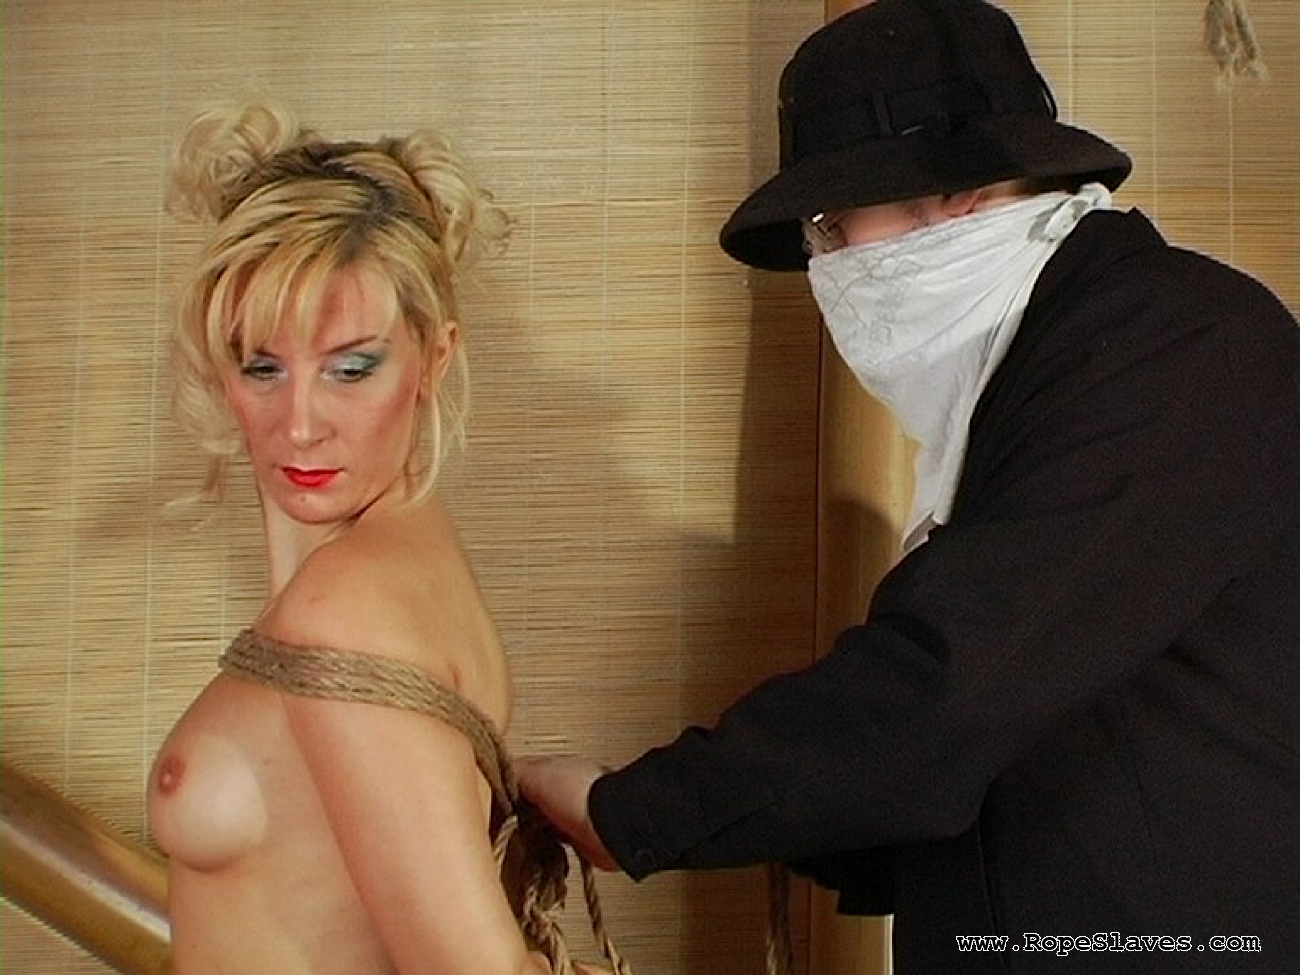 02 Submissive Sex Slave Inspection - Obedient Blond Bound